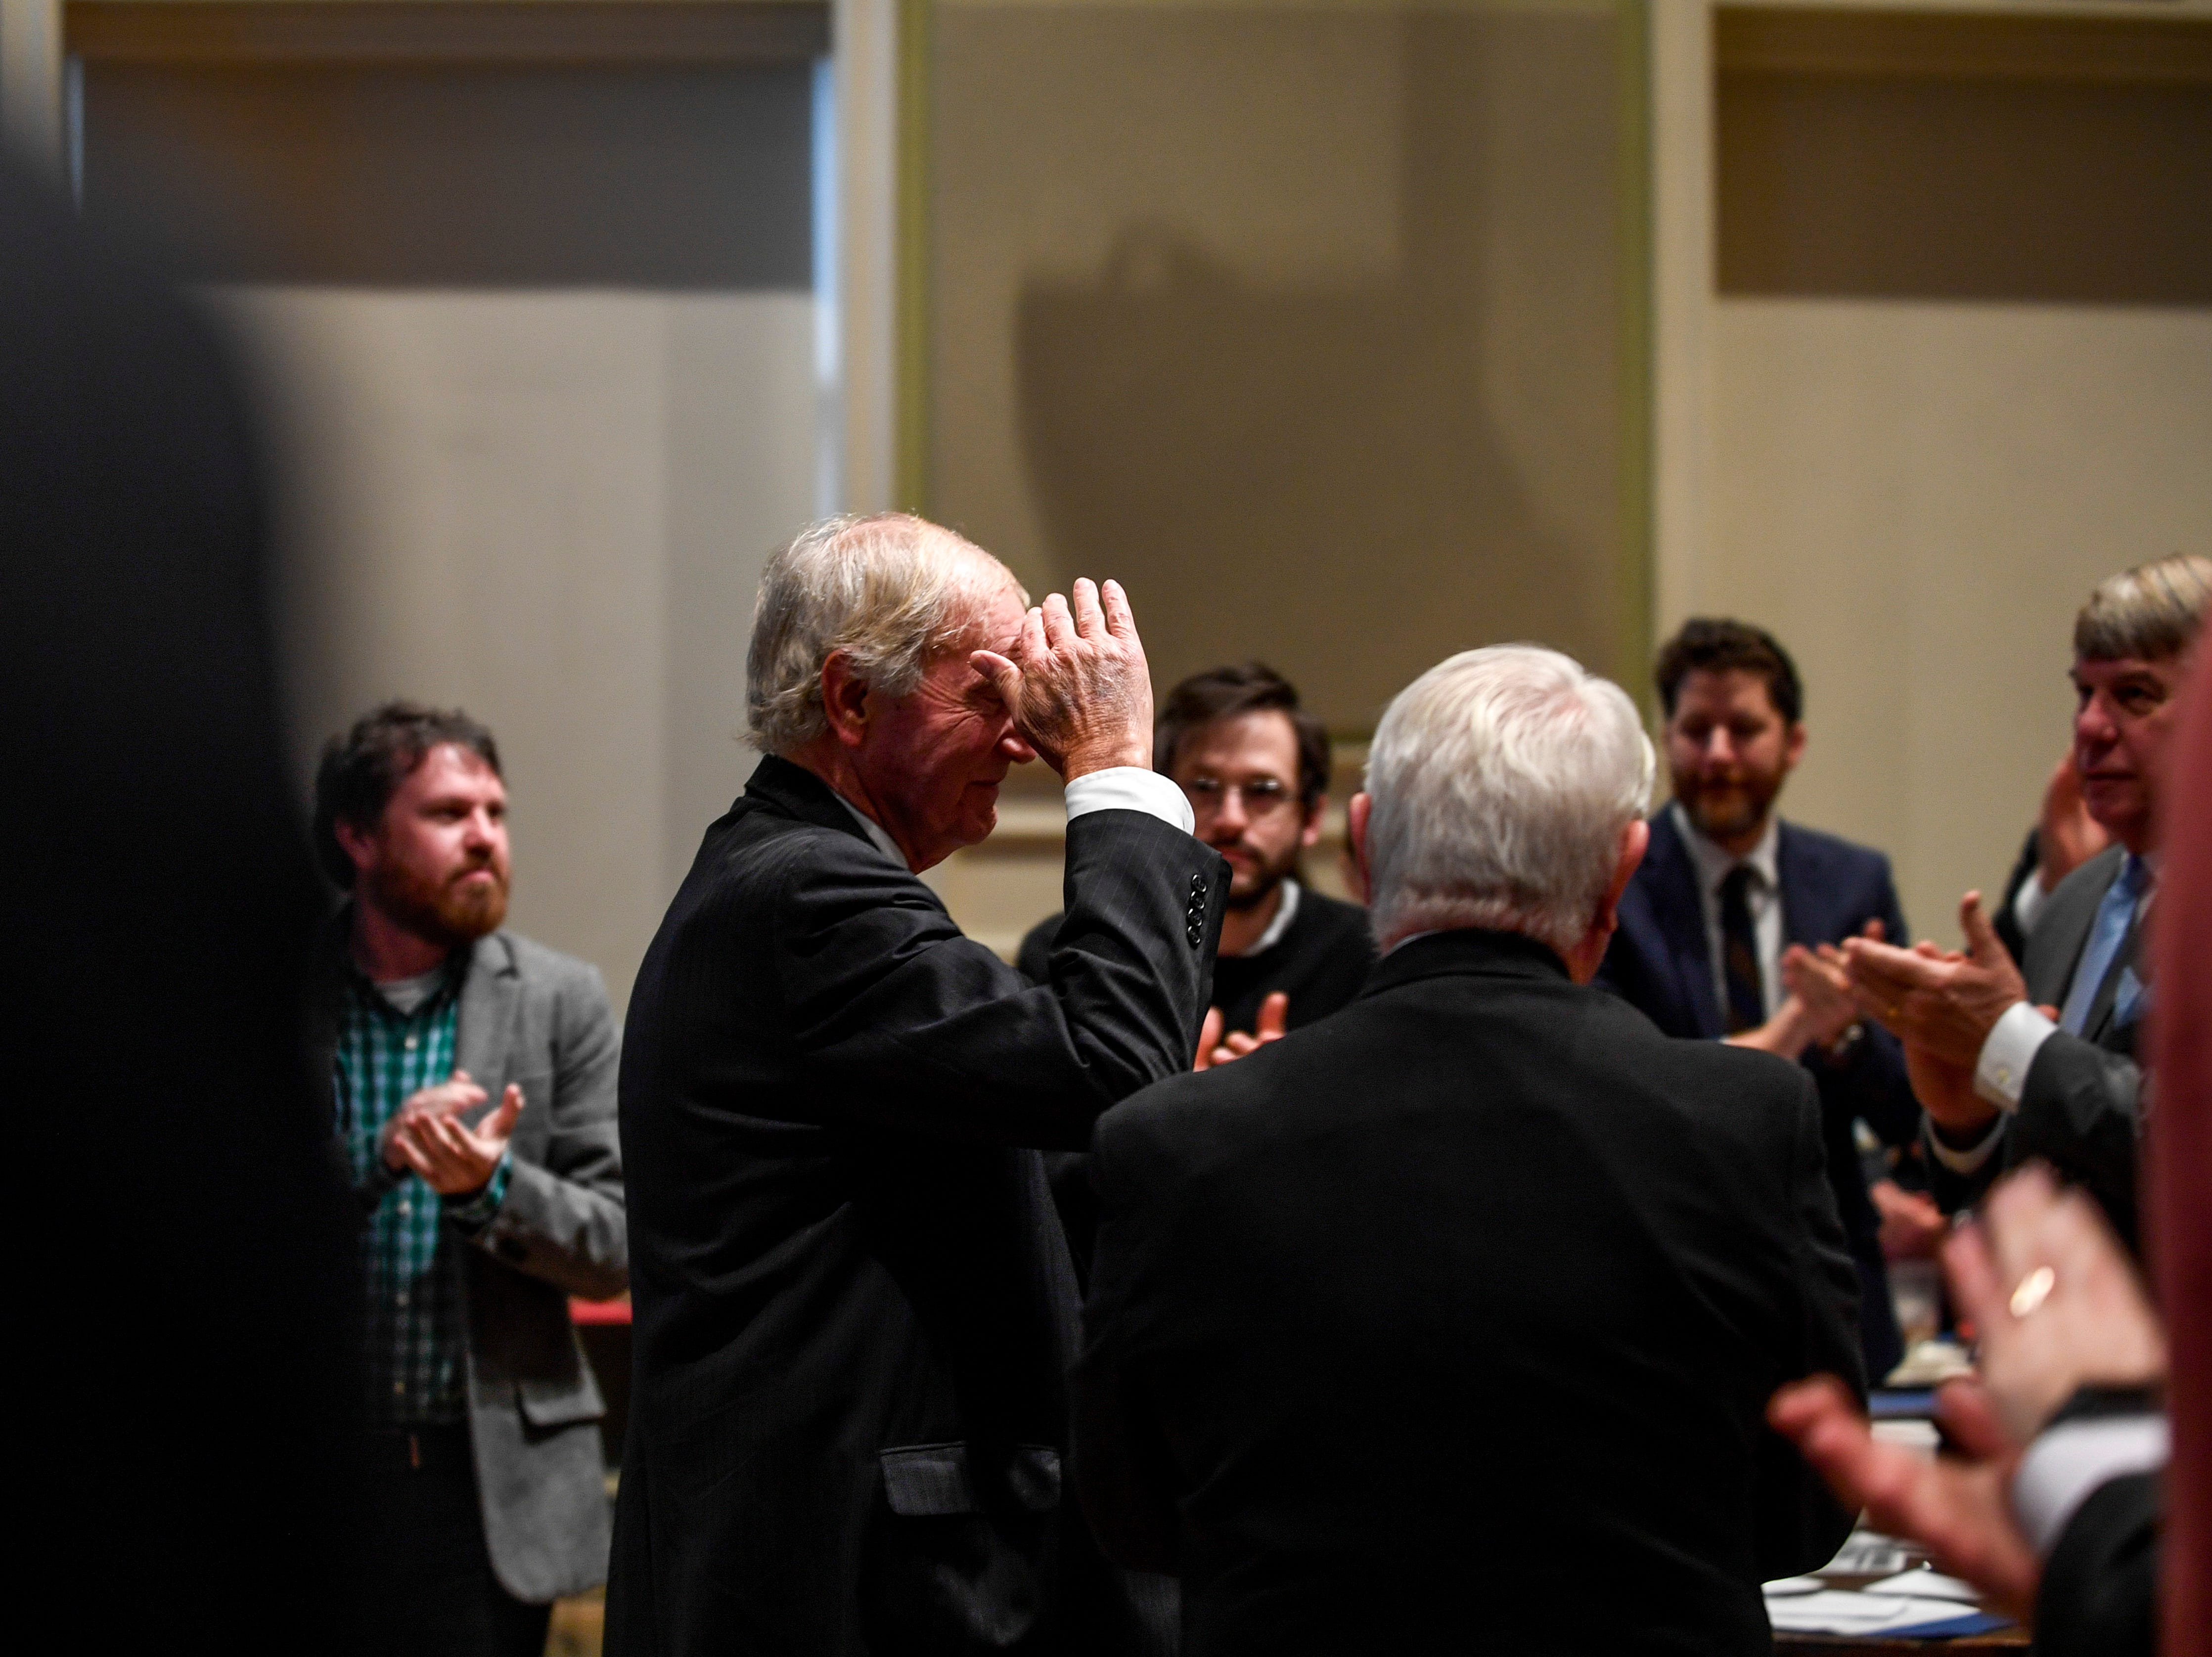 Jackson City Mayor Jerry Gist gives a salute to a crowd applauding him during the monthly First Friday Forum at First United Methodist Church in Jackson, Tenn., on Friday, Jan. 4, 2019.